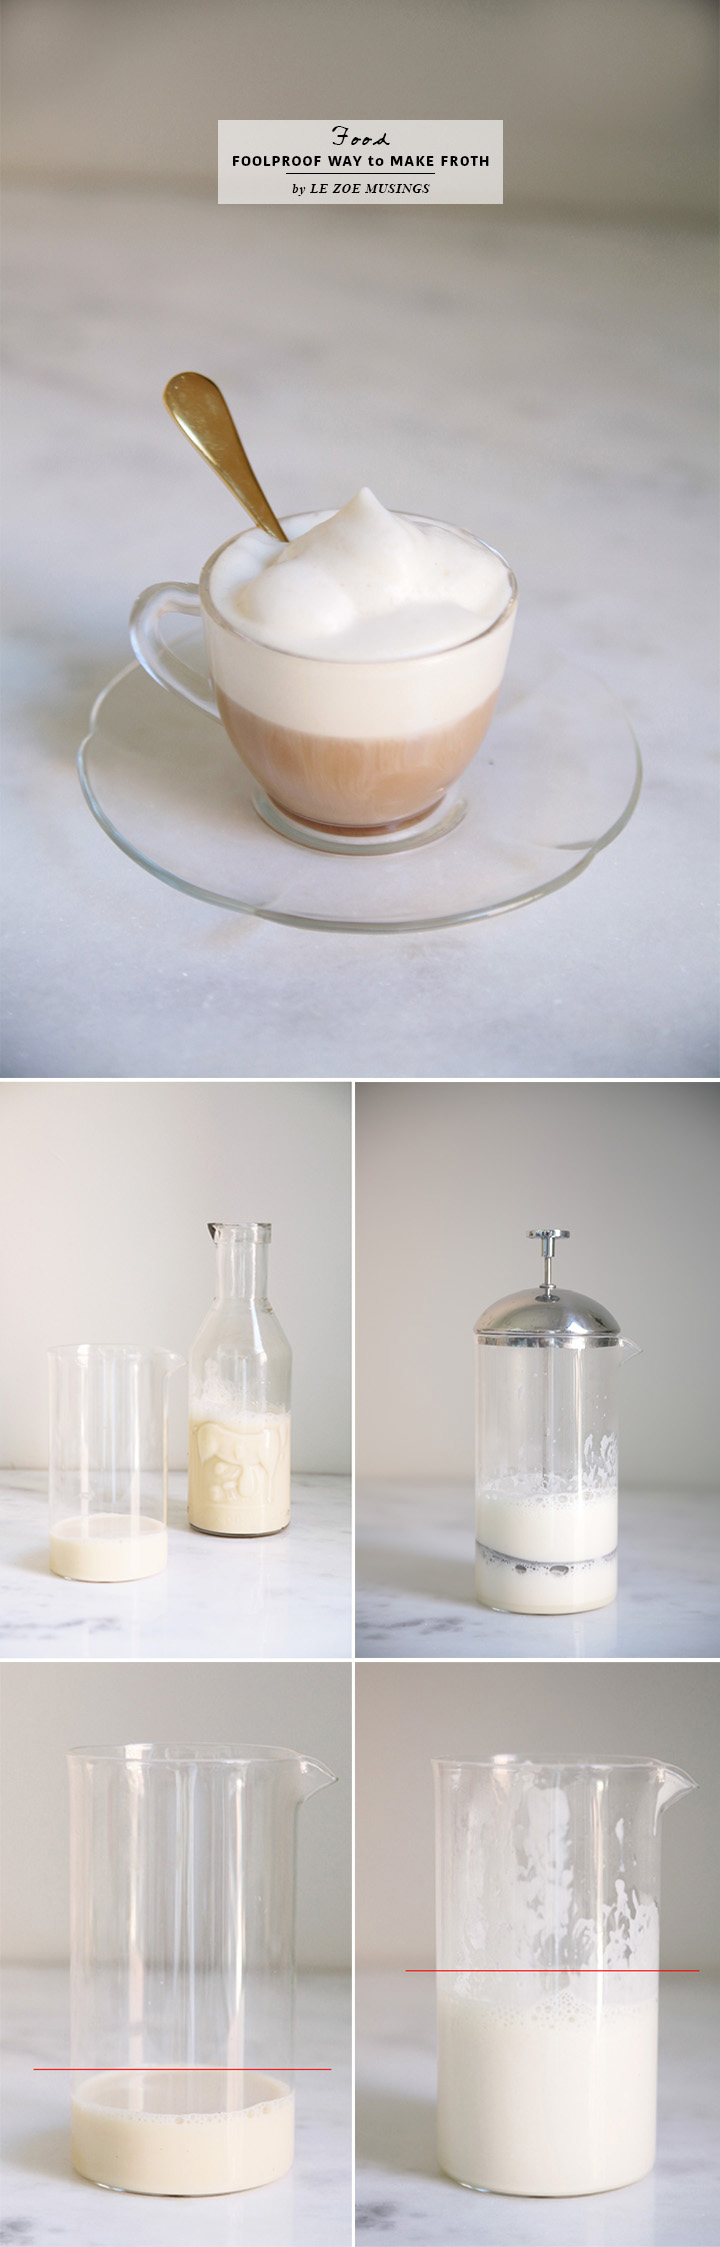 foolproof-way-to-make-froth-by-le-zoe-musings